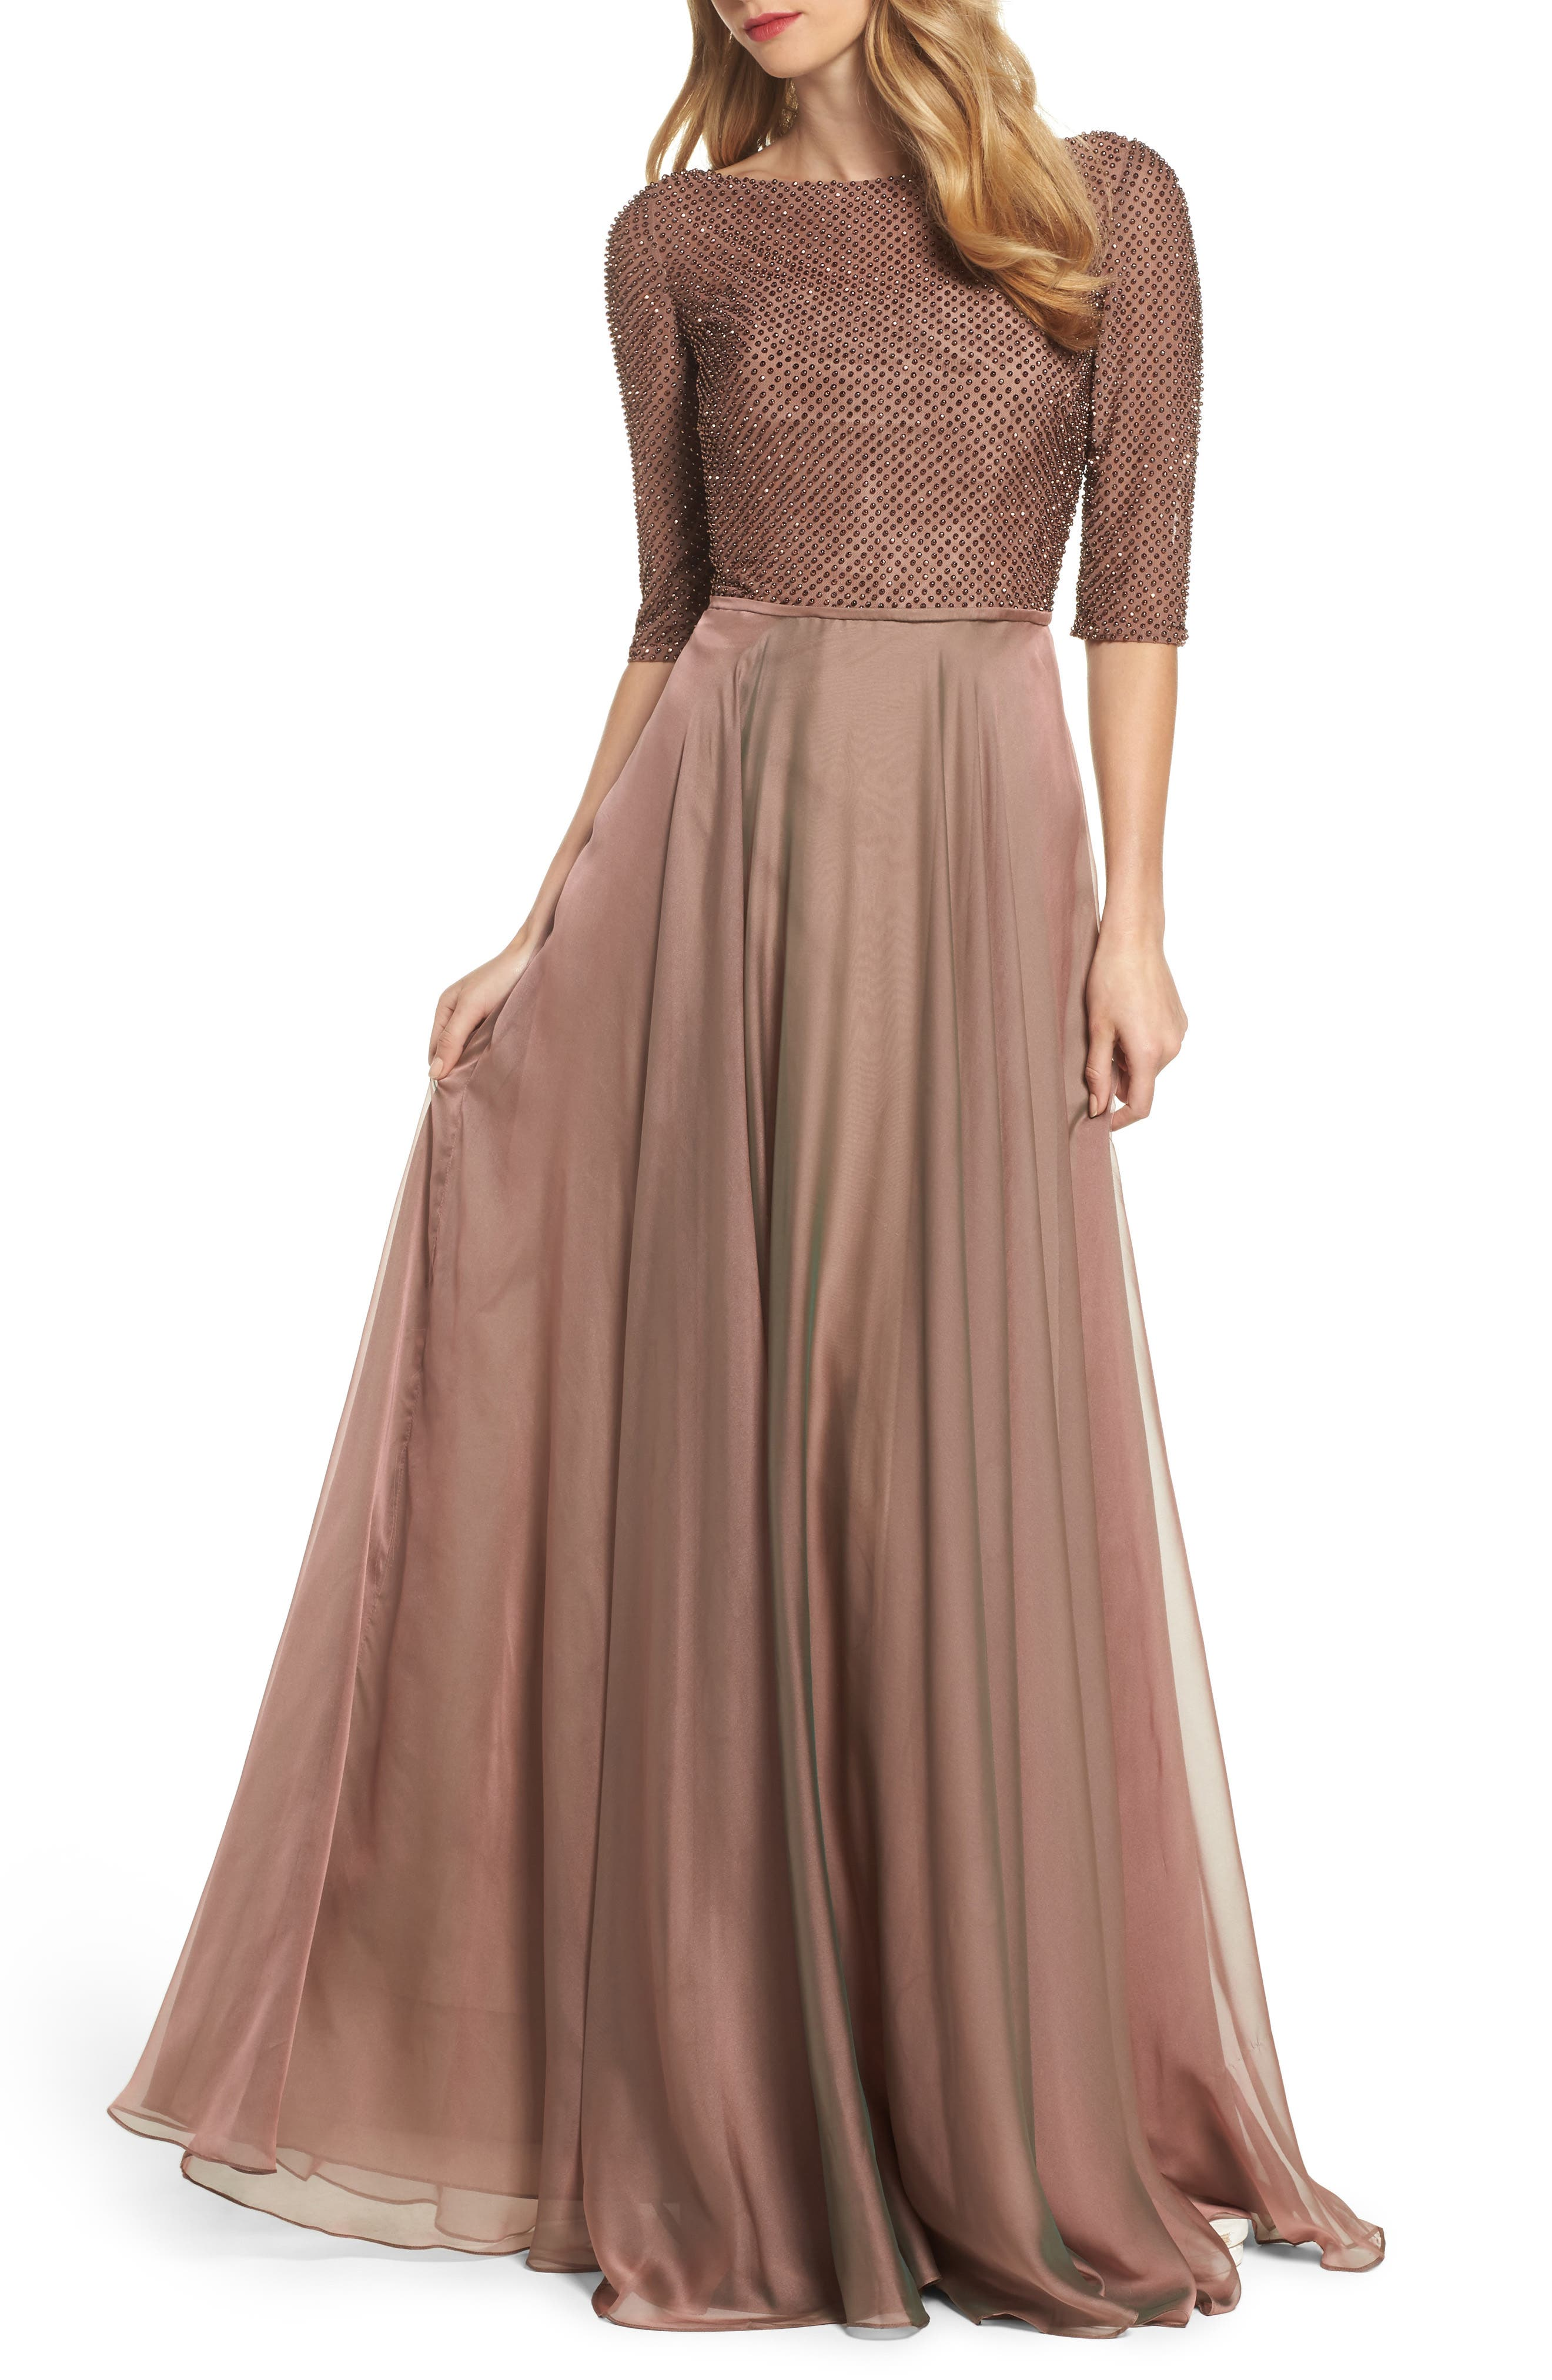 LA FEMME, Embellished Bodice Gown, Main thumbnail 1, color, COCOA